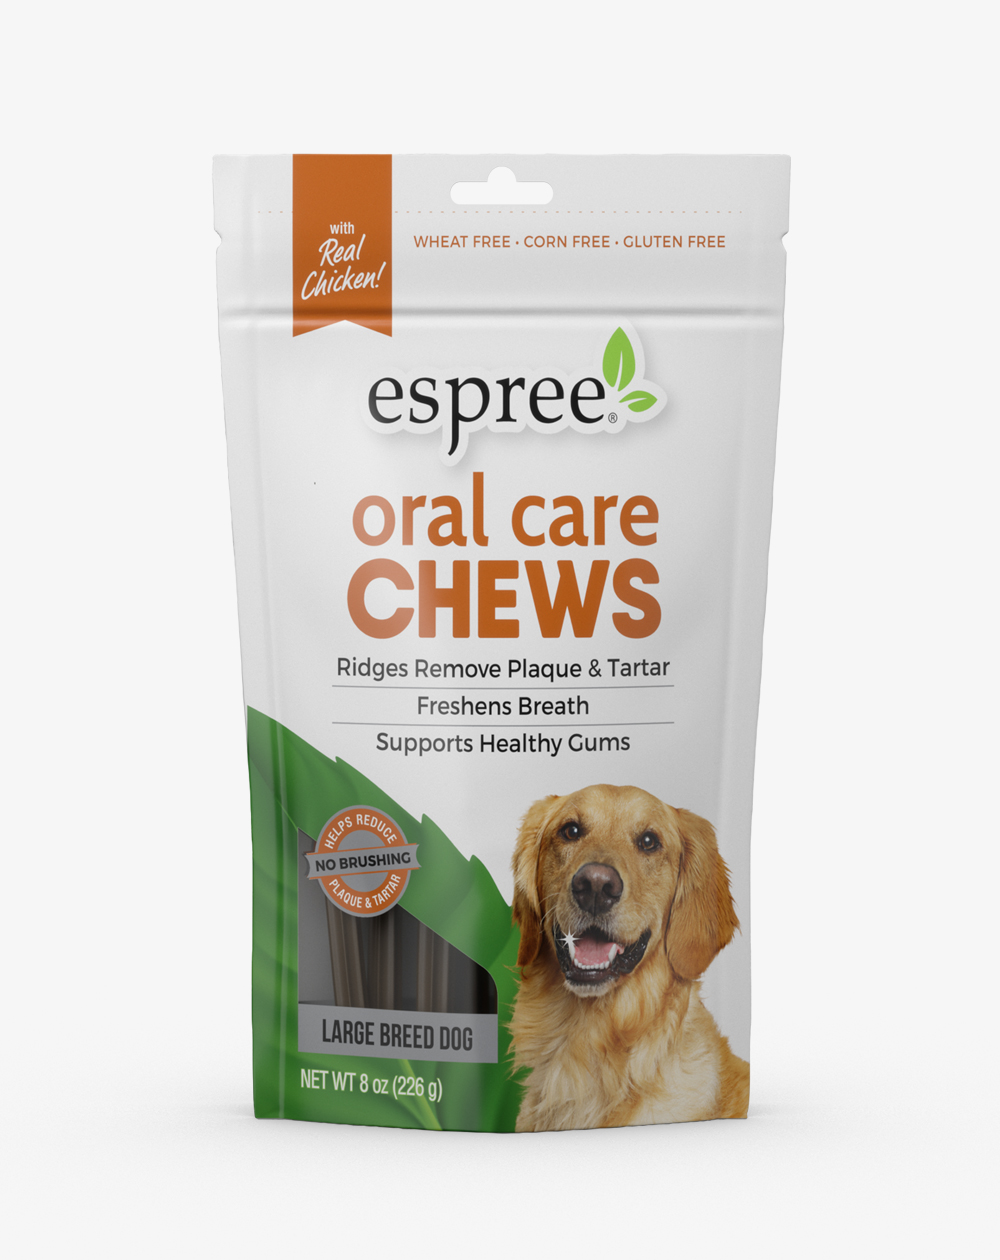 Espree Oral Care Chews for Large Dogs